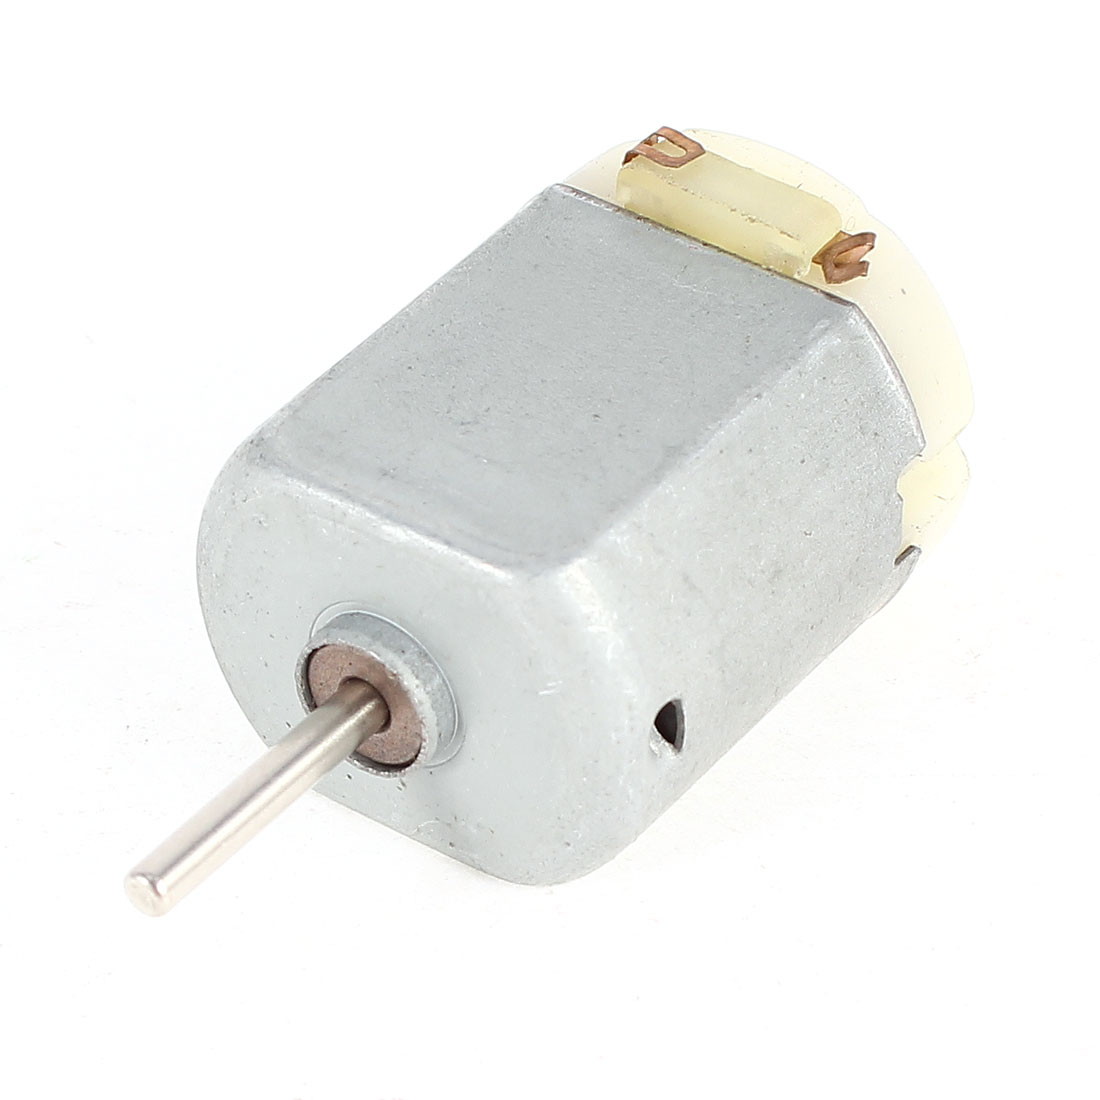 DC 2V 8000RPM 2 Pin Connector 130 Model Micro Motor for Massager